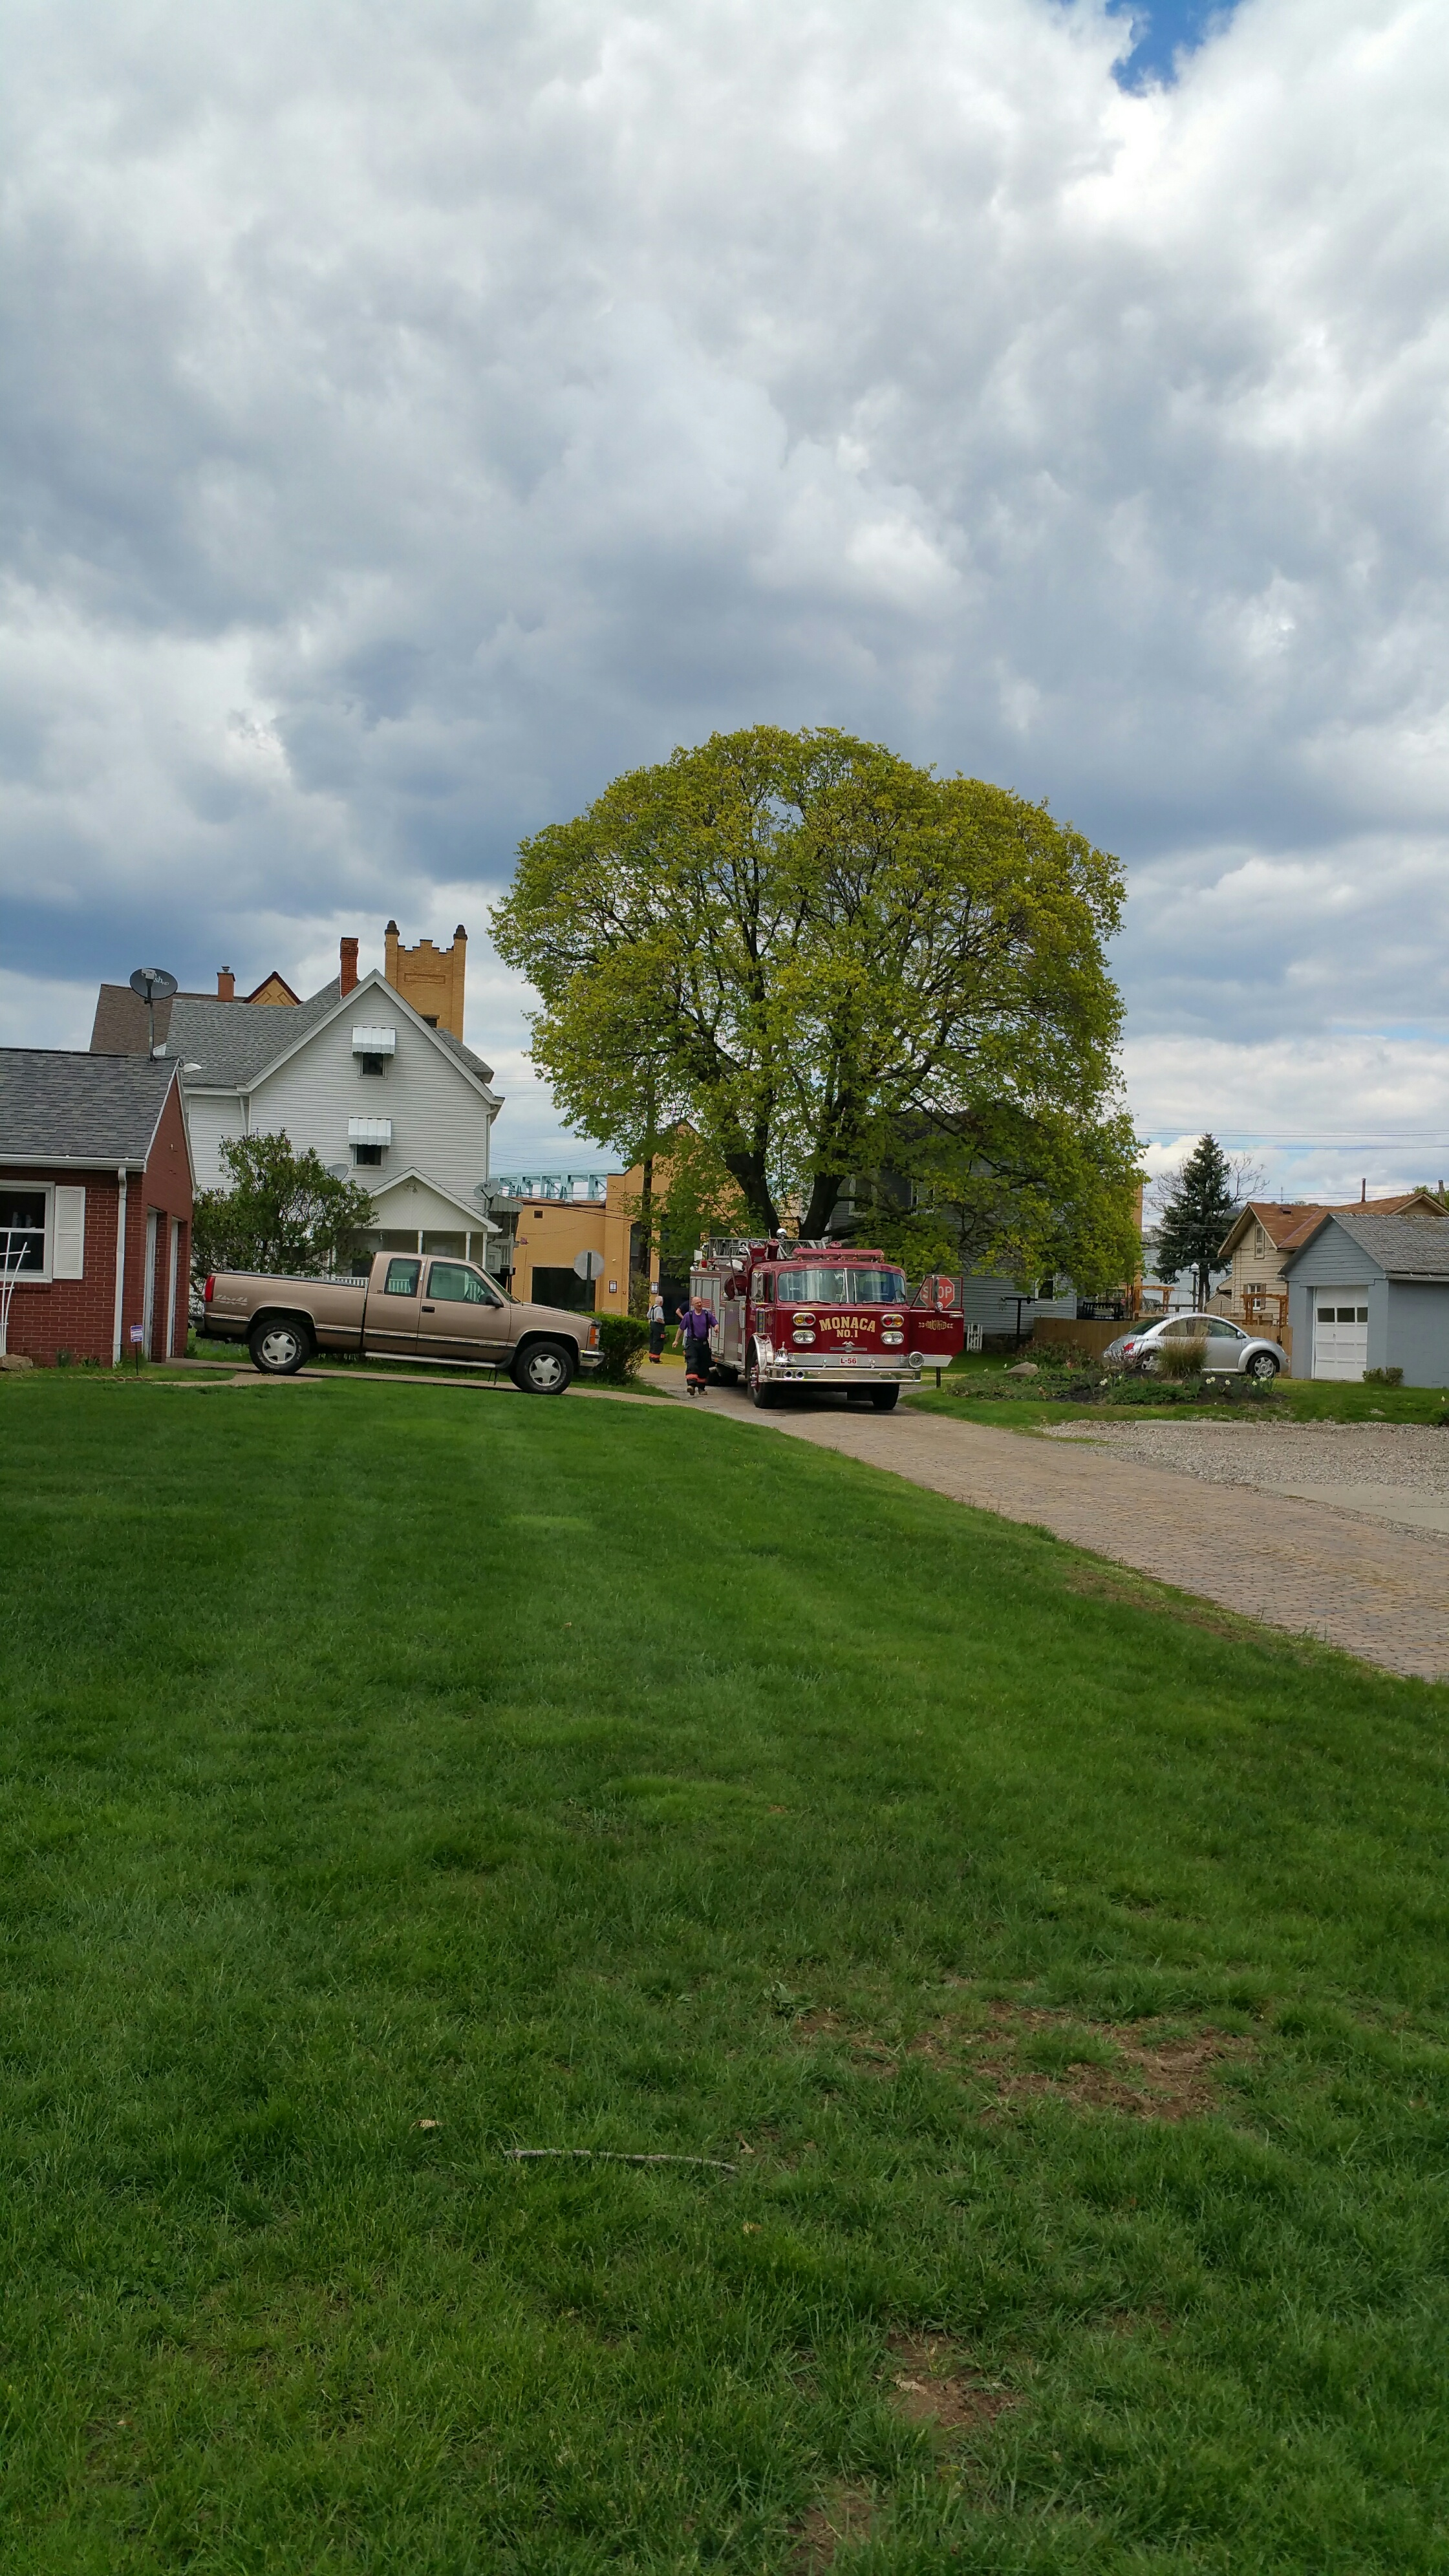 Cat Stuck in Tree on Indiana - 5/1/15